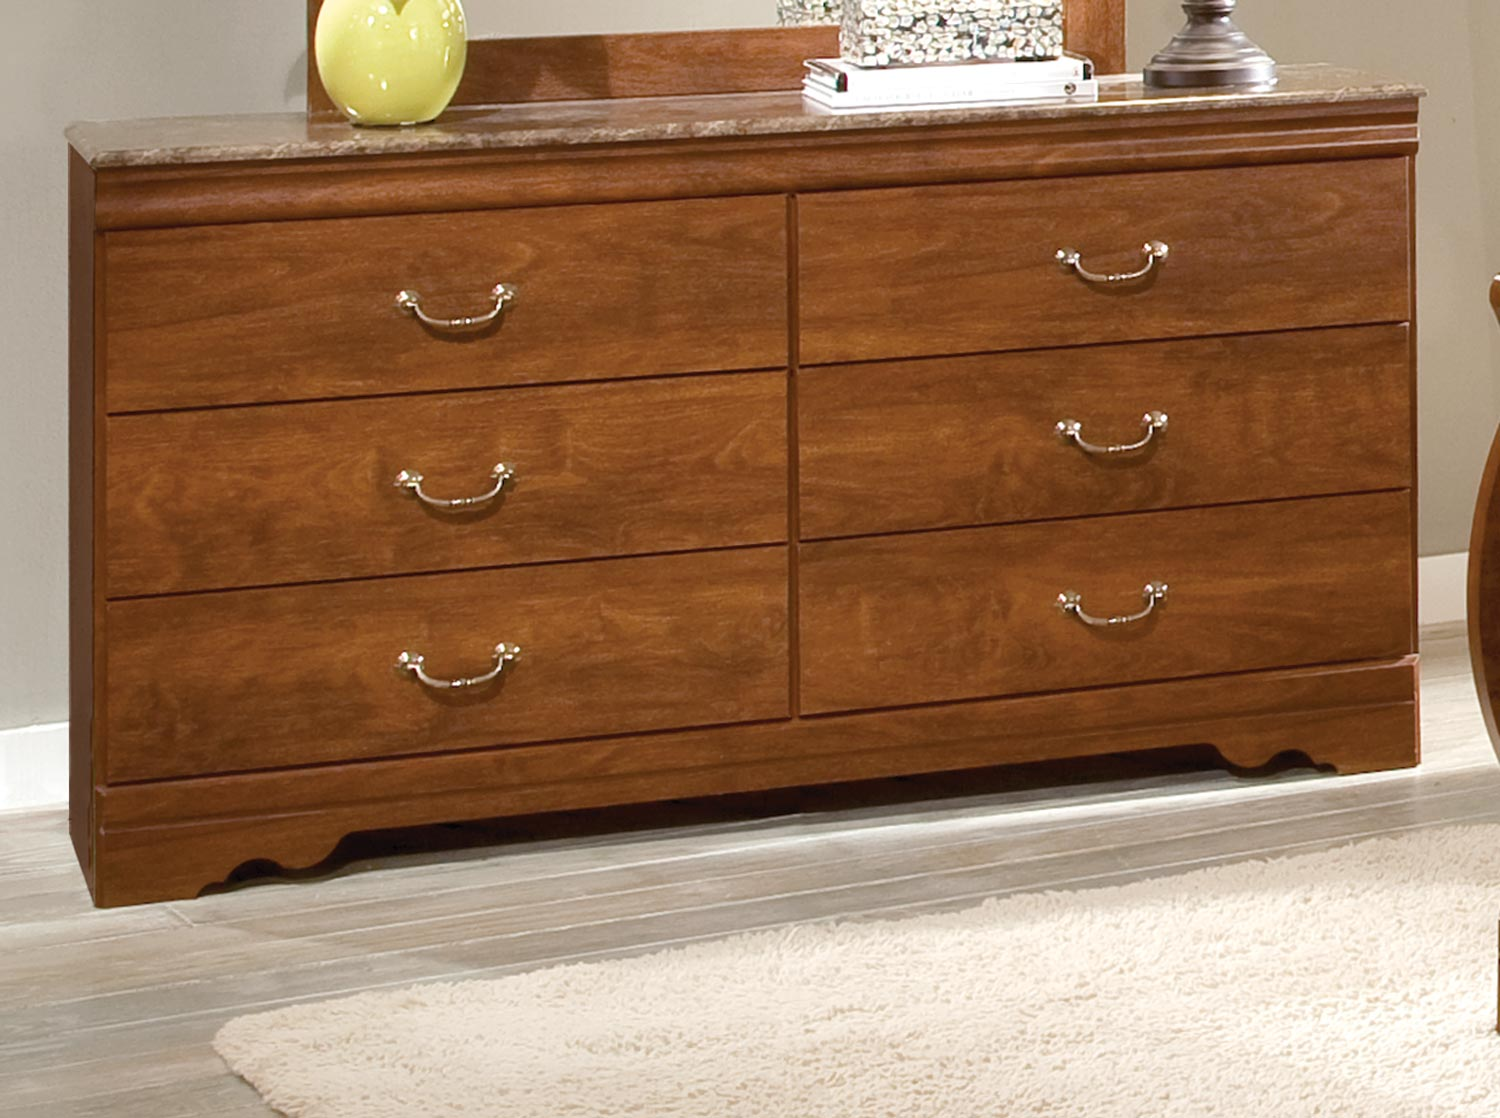 Kith Furniture Amy Lynn Dresser